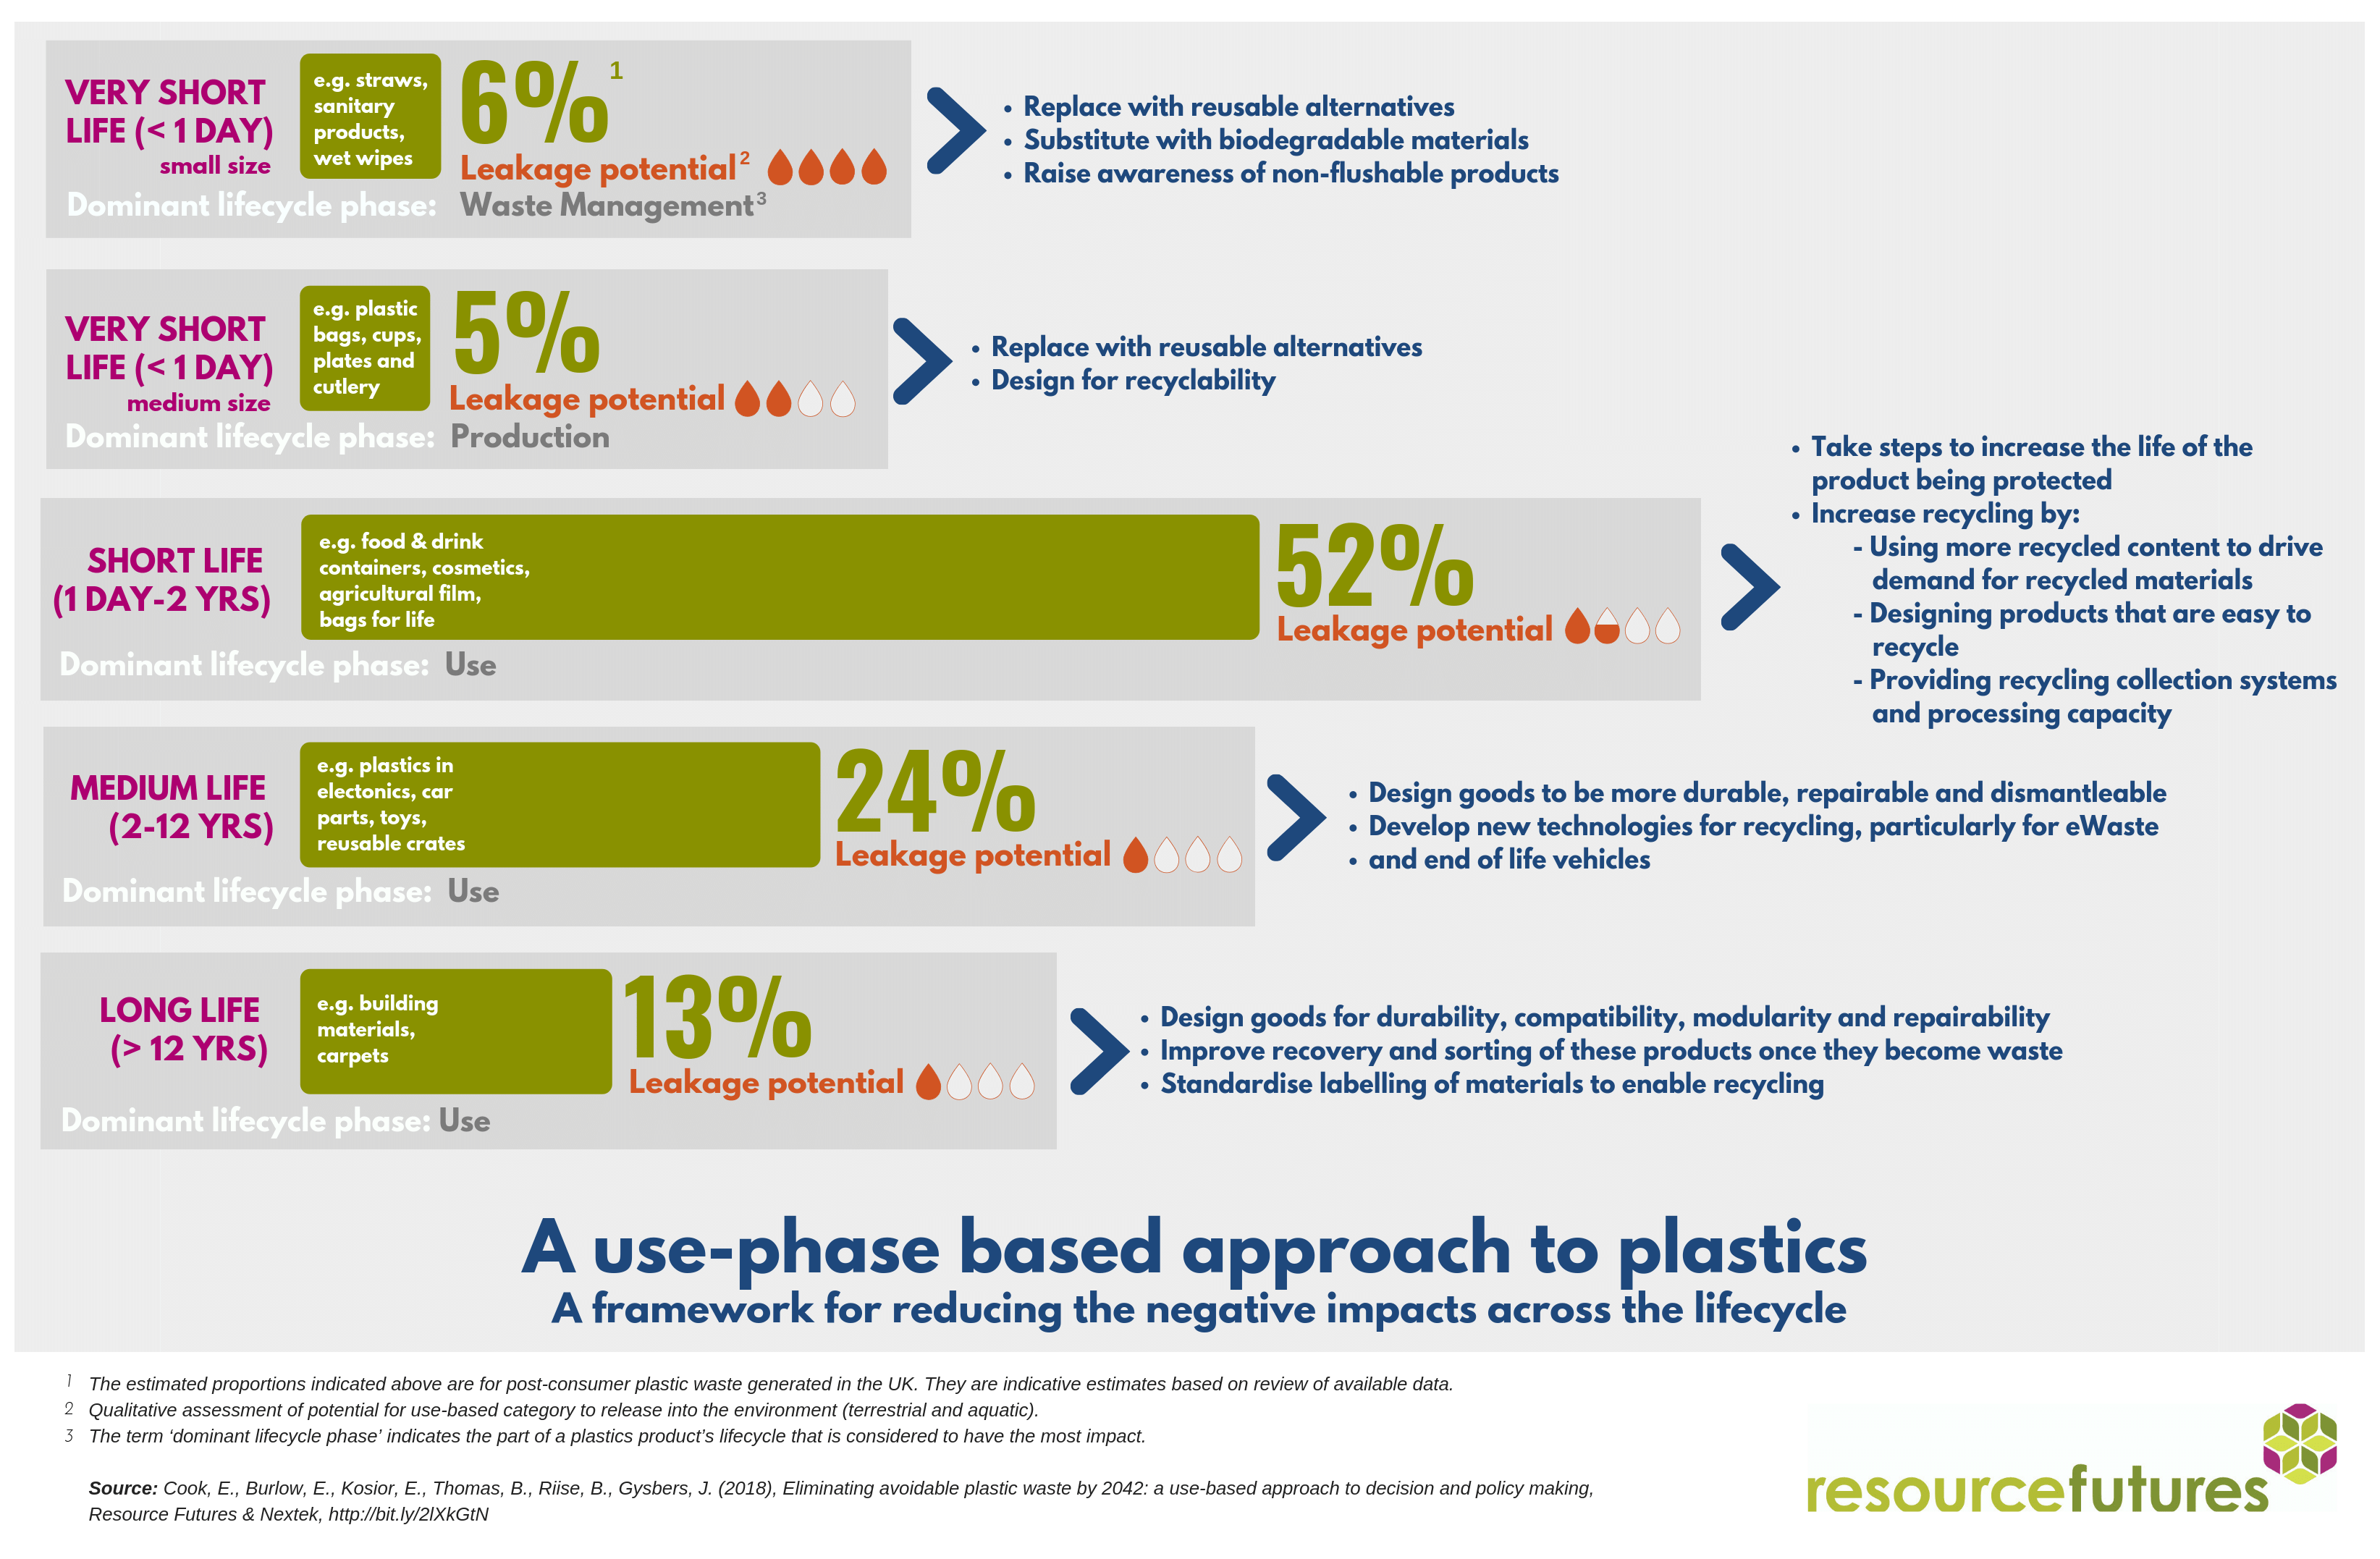 Use-phase based approach to plastics; addressing single use plastic